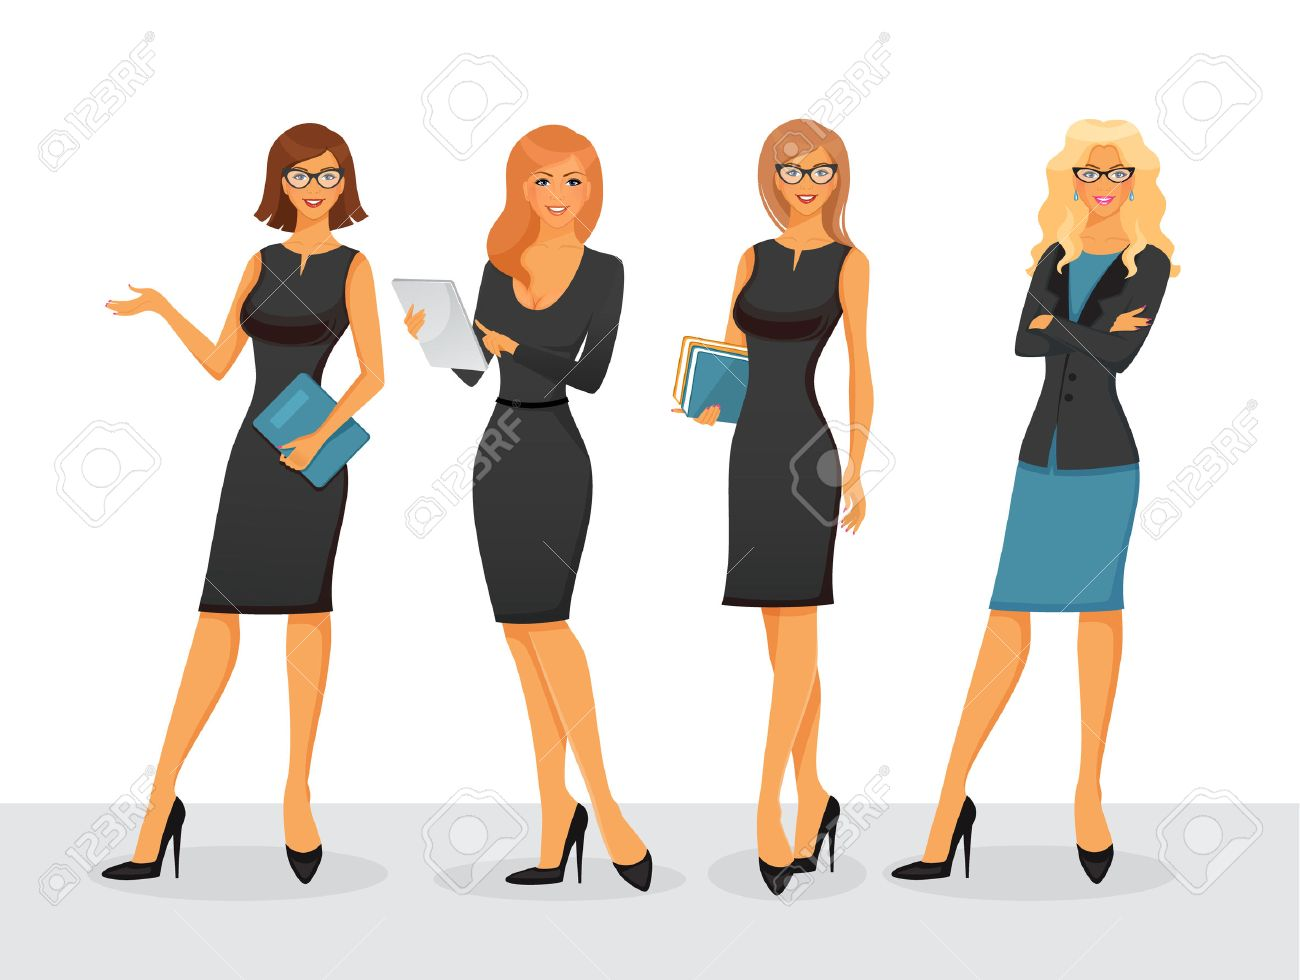 Vector illustration of Businesswoman in various poses - 43890009